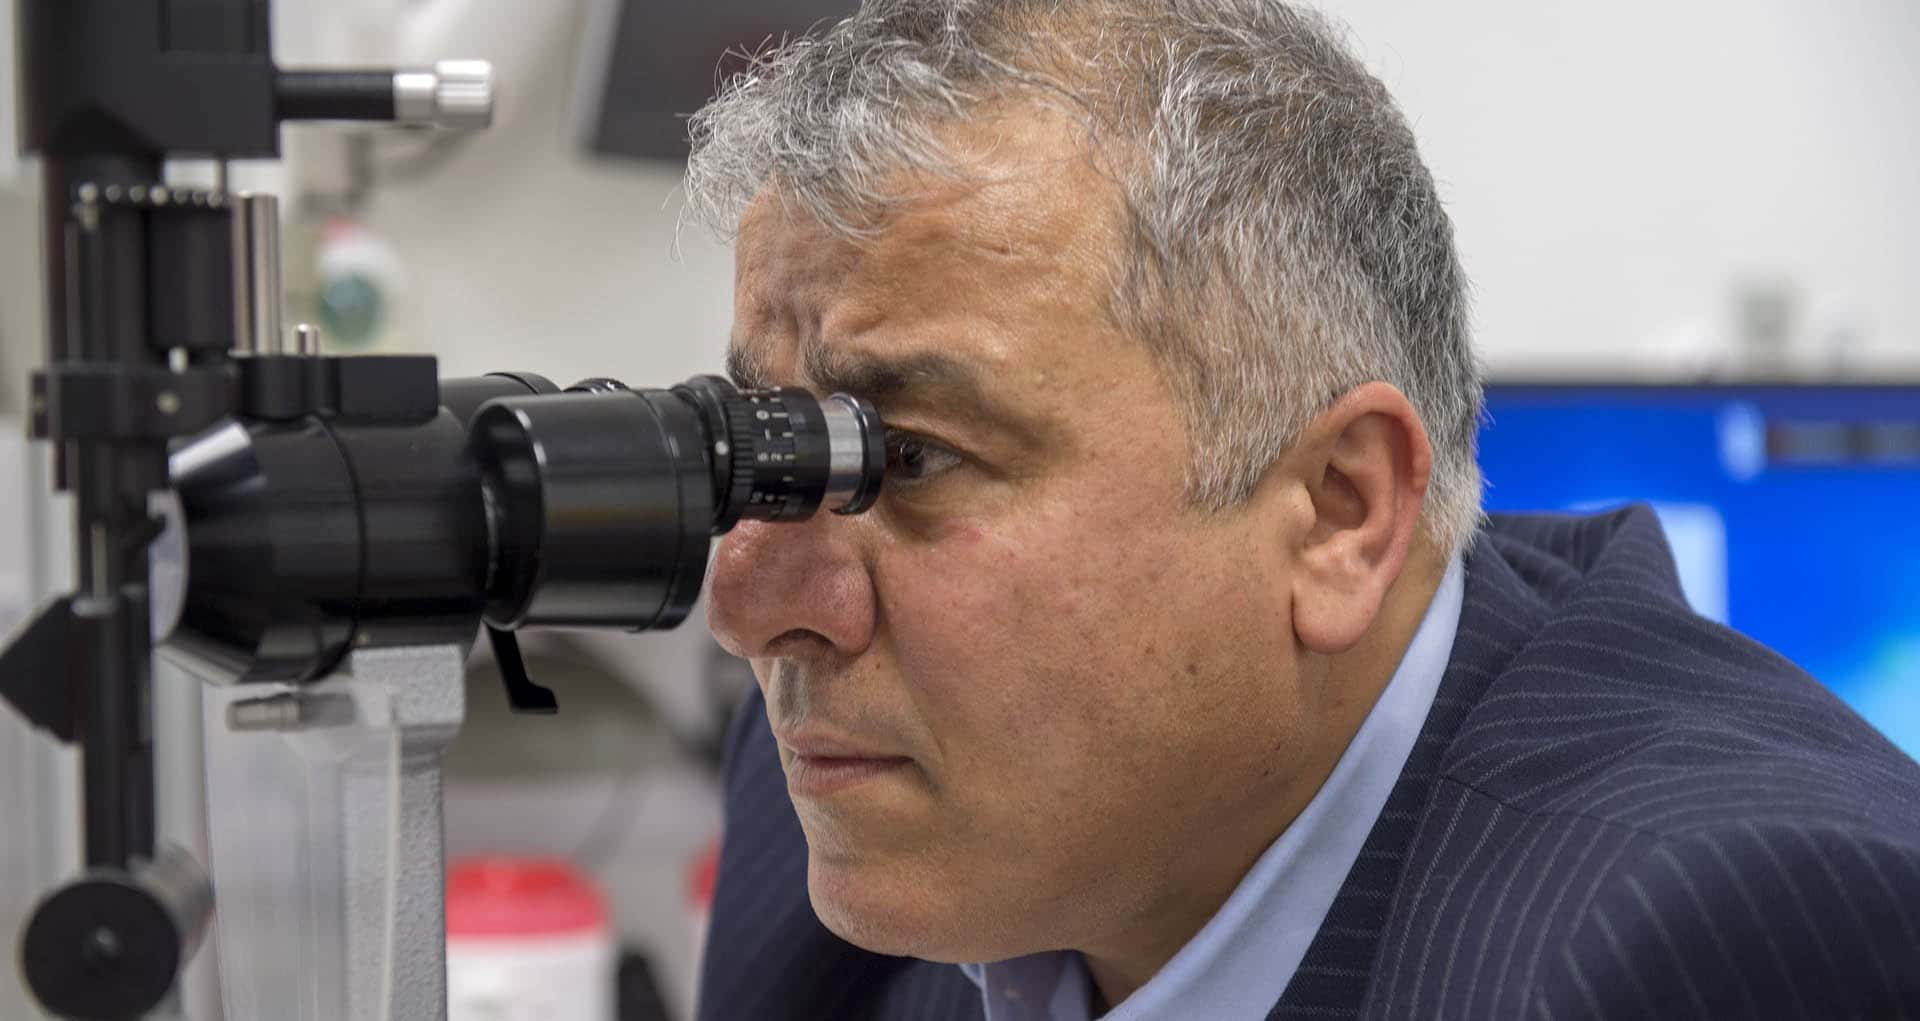 eyecare - 7 Important Guides to Choose the Best Ophthalmologist